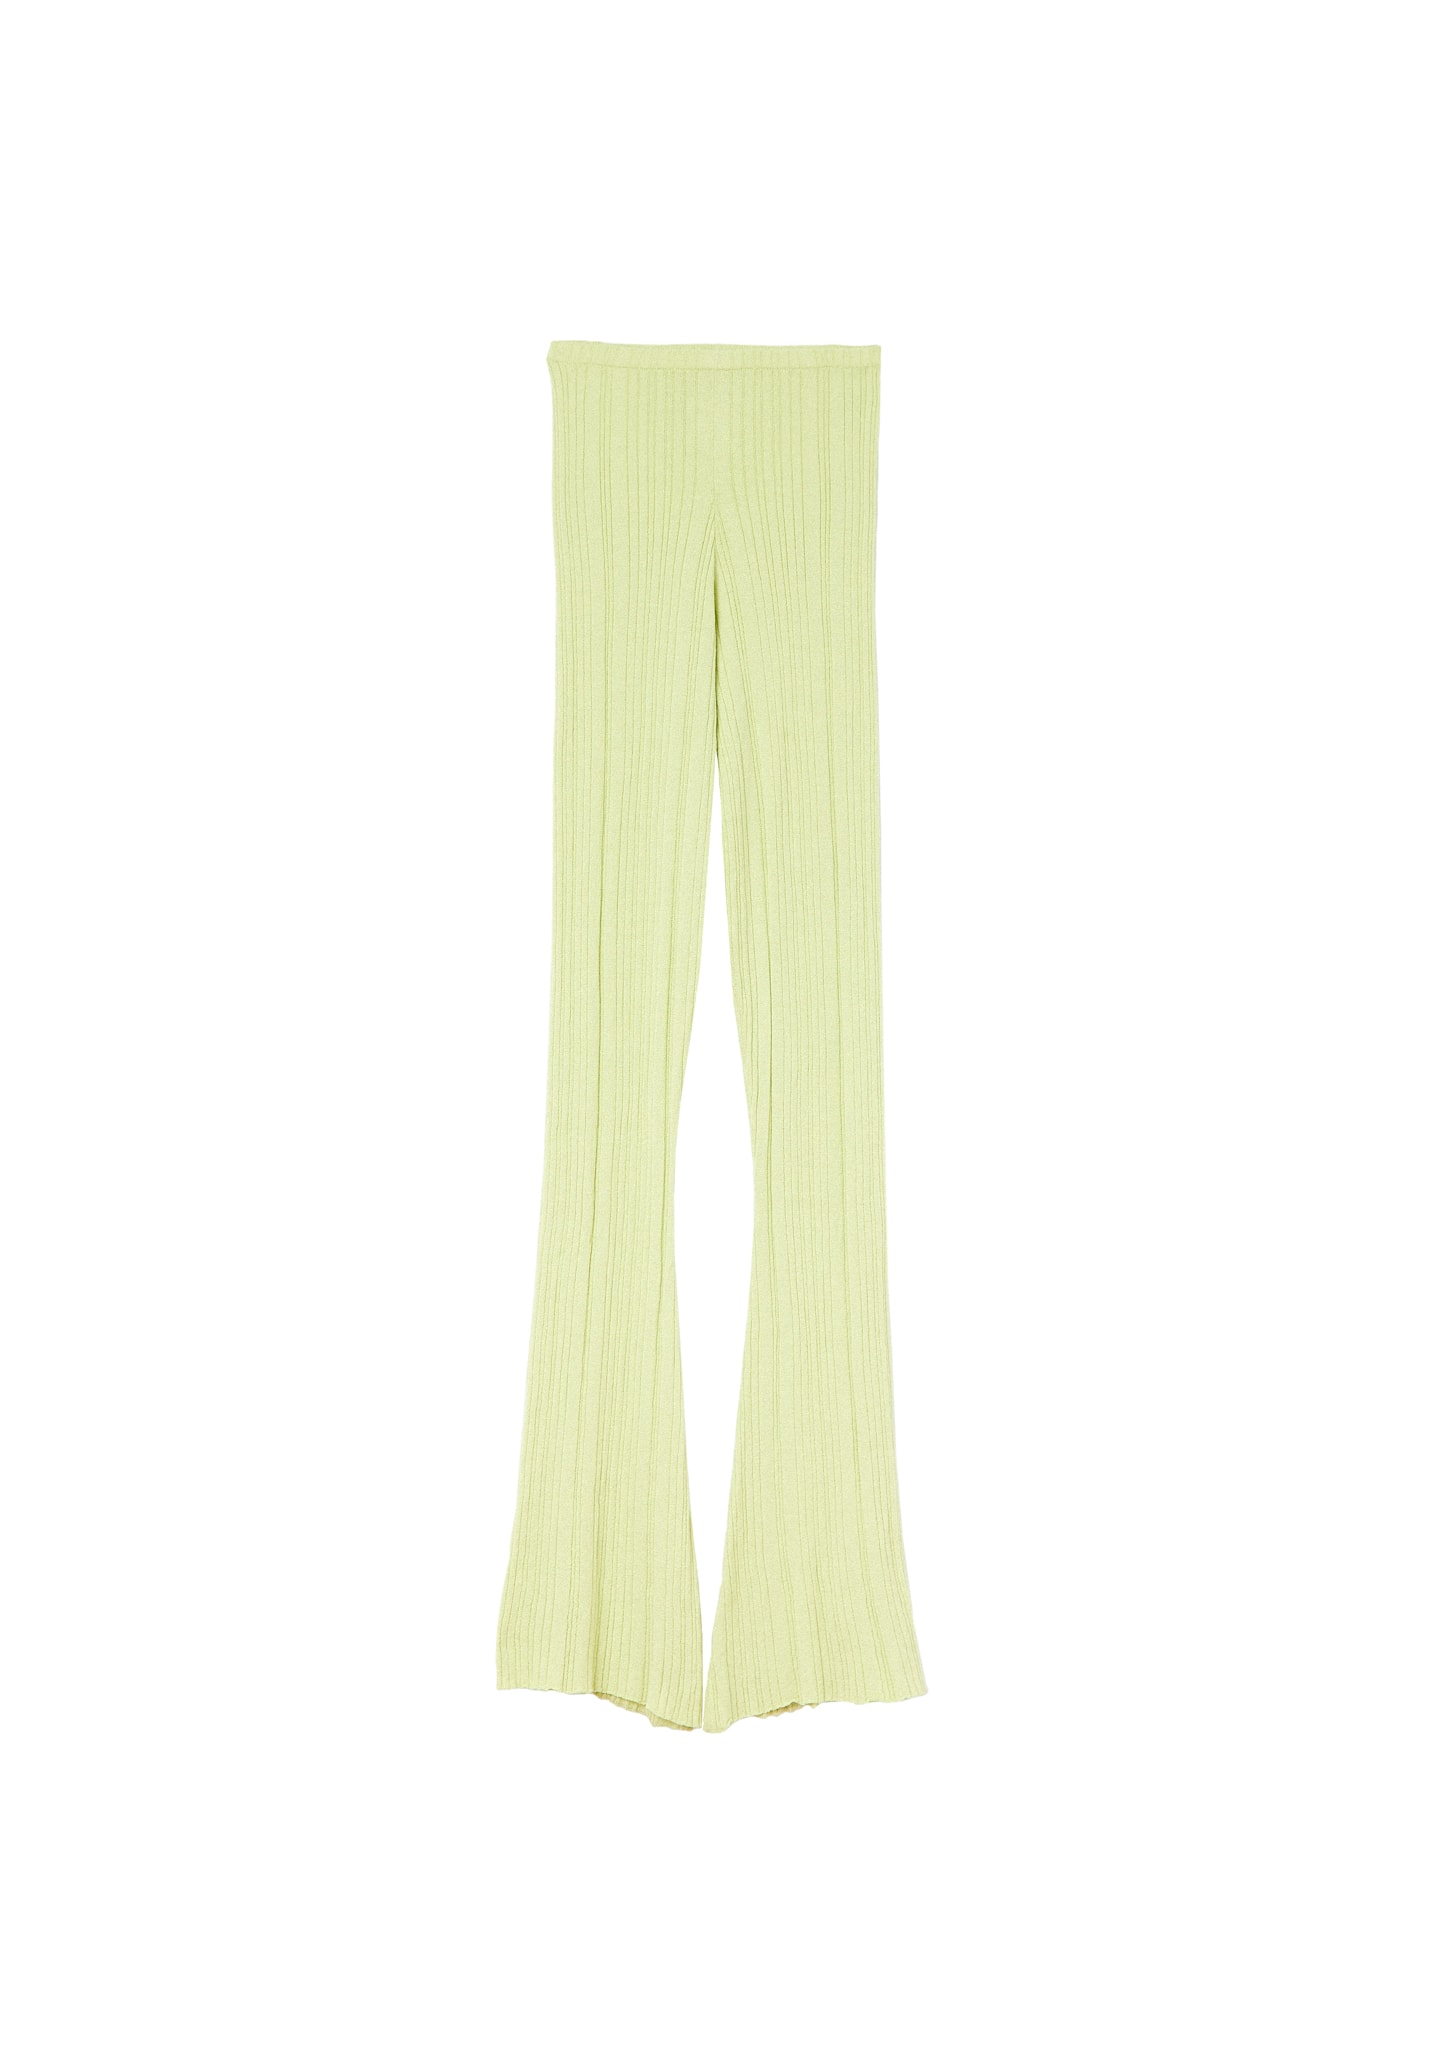 RIBBED-KNIT FLARED PANTS ELASTICATED WAISTBAND